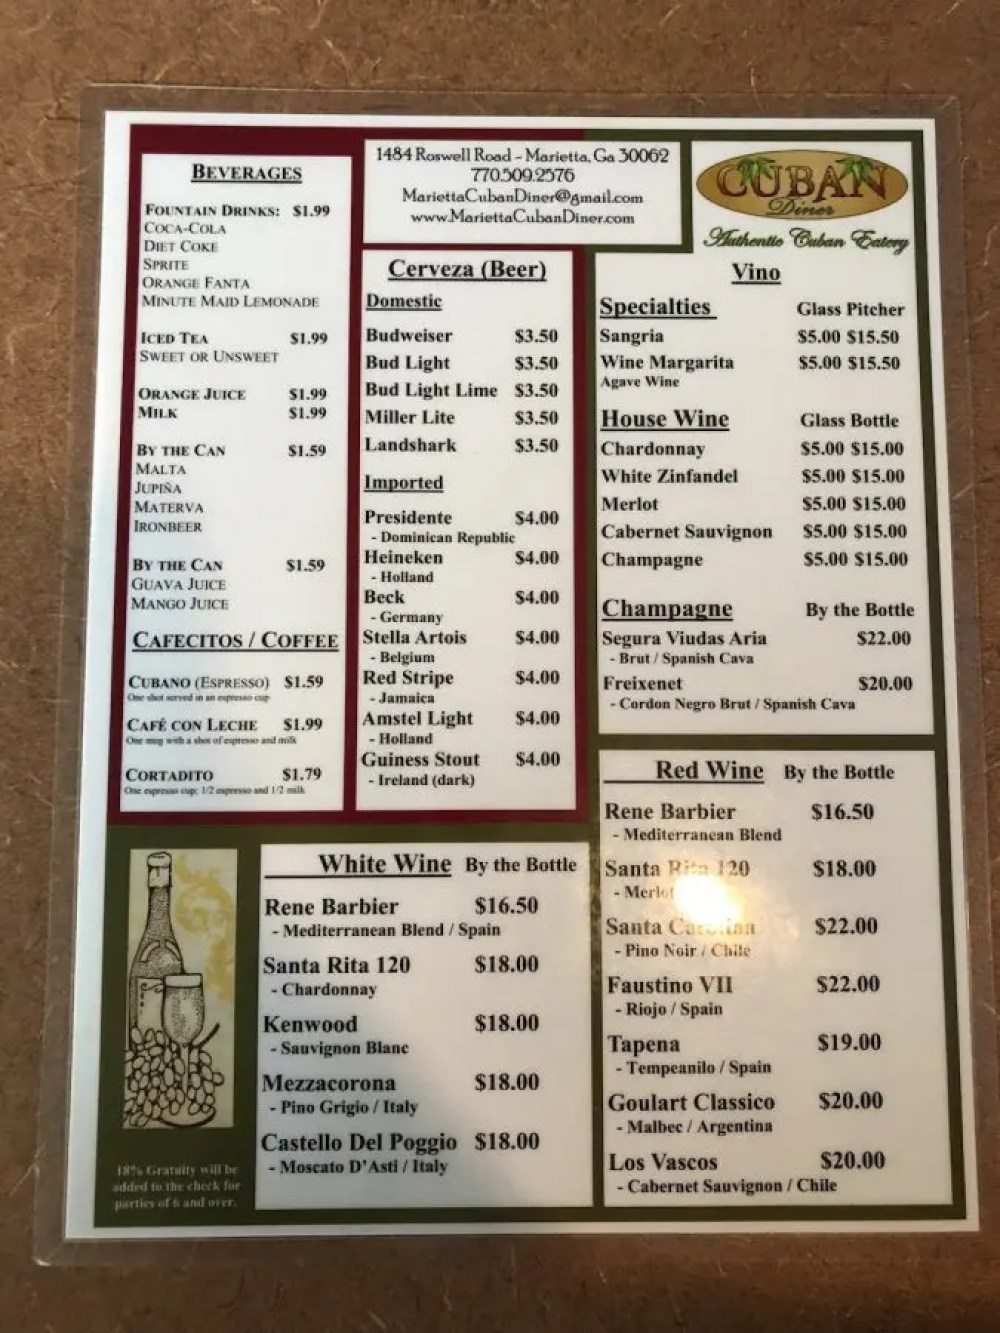 The Cuban Diner Menu Page 2